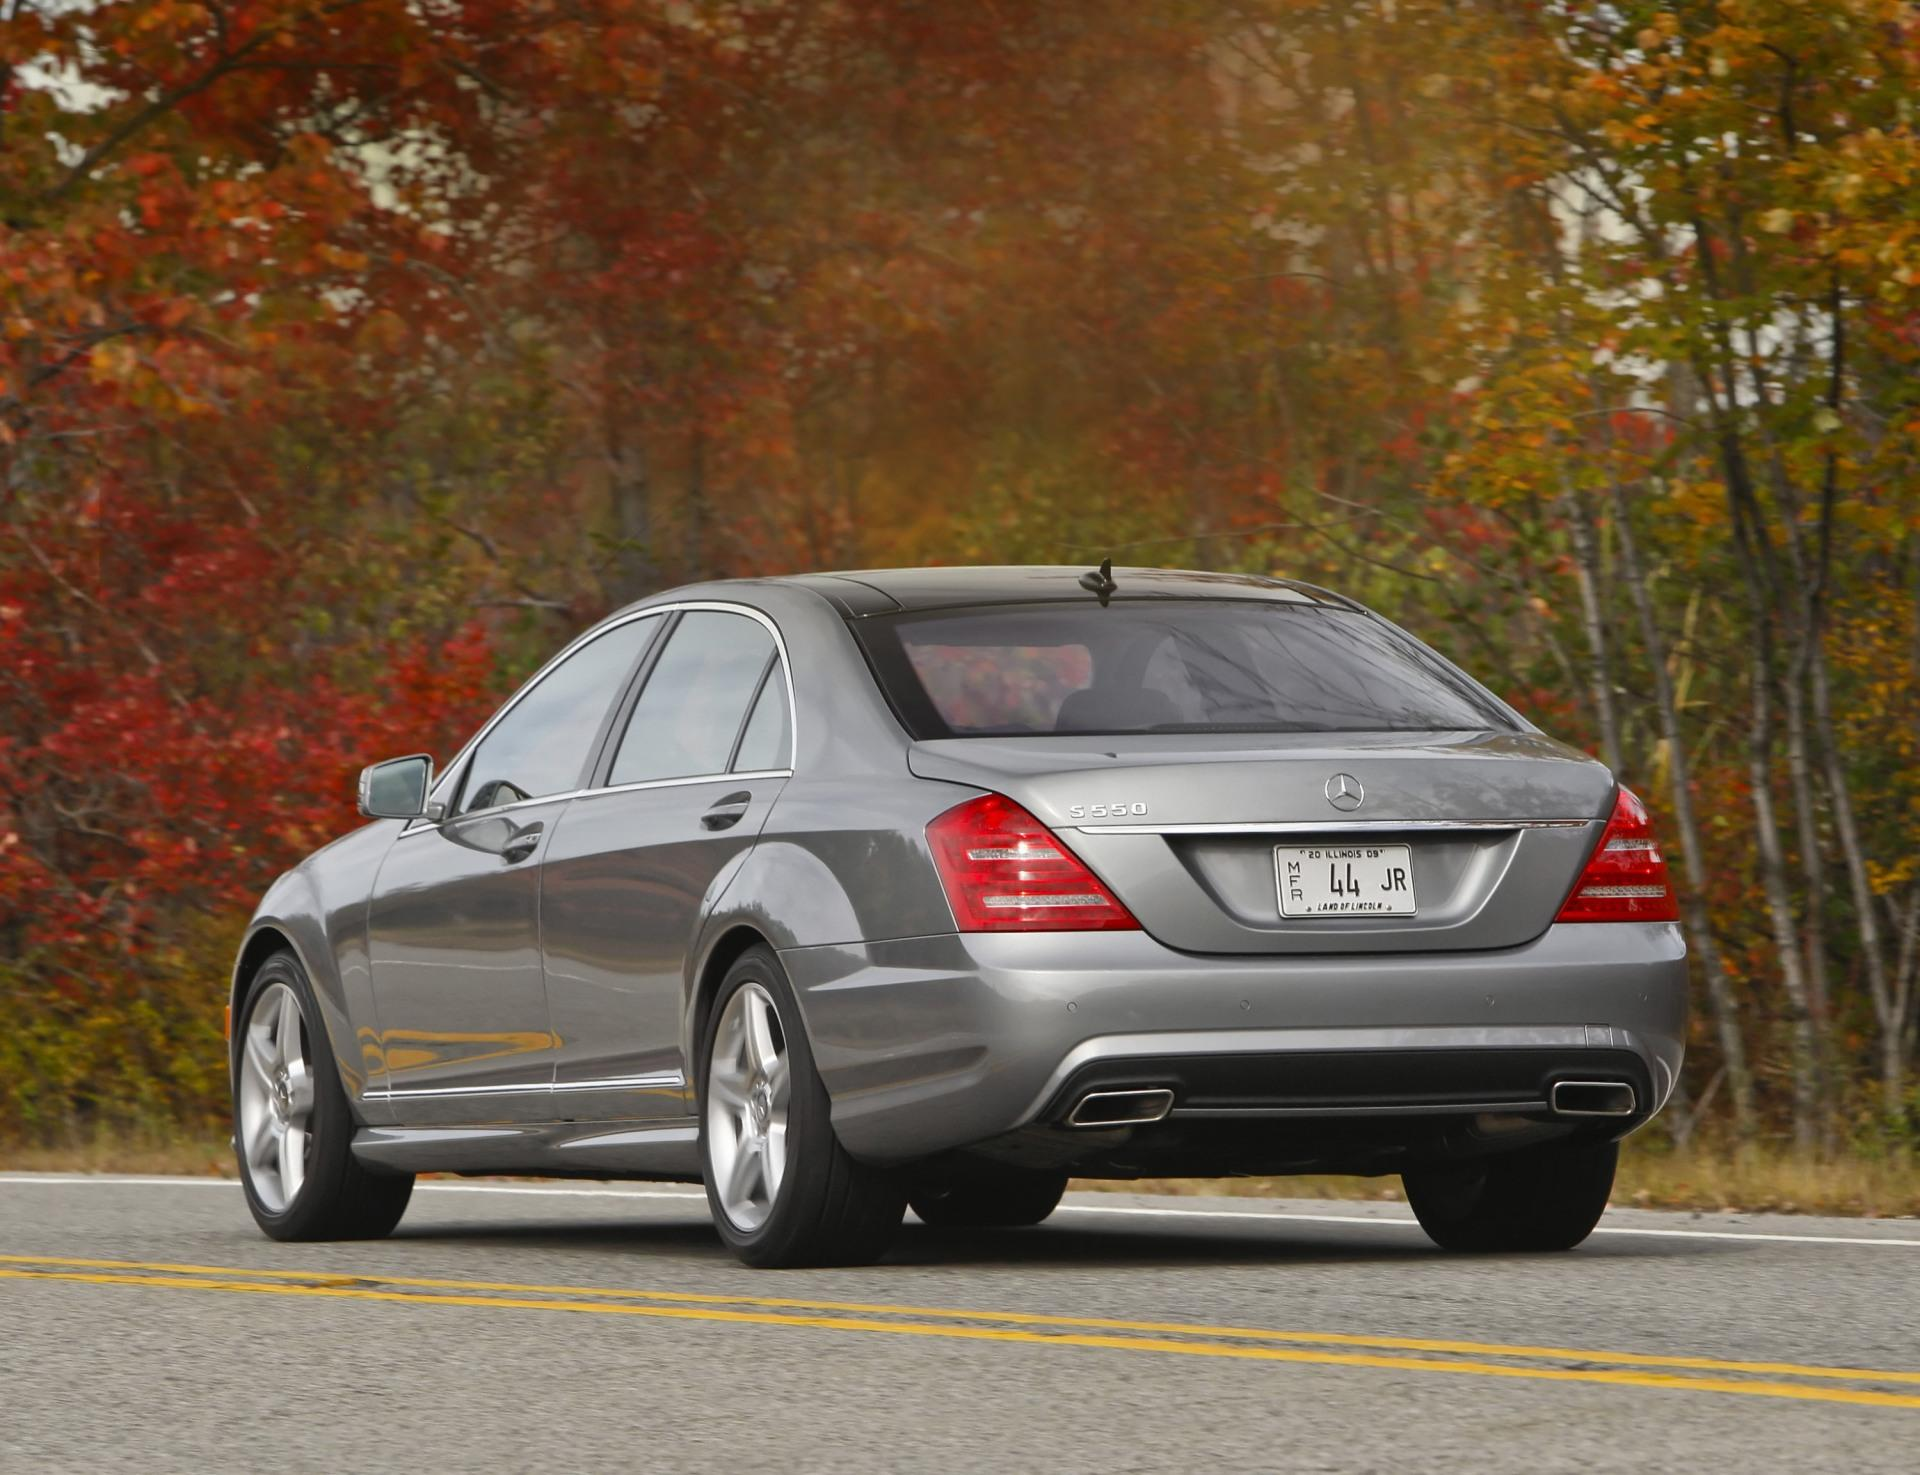 Great Description About 2006 Mercedes benz S class with Amazing